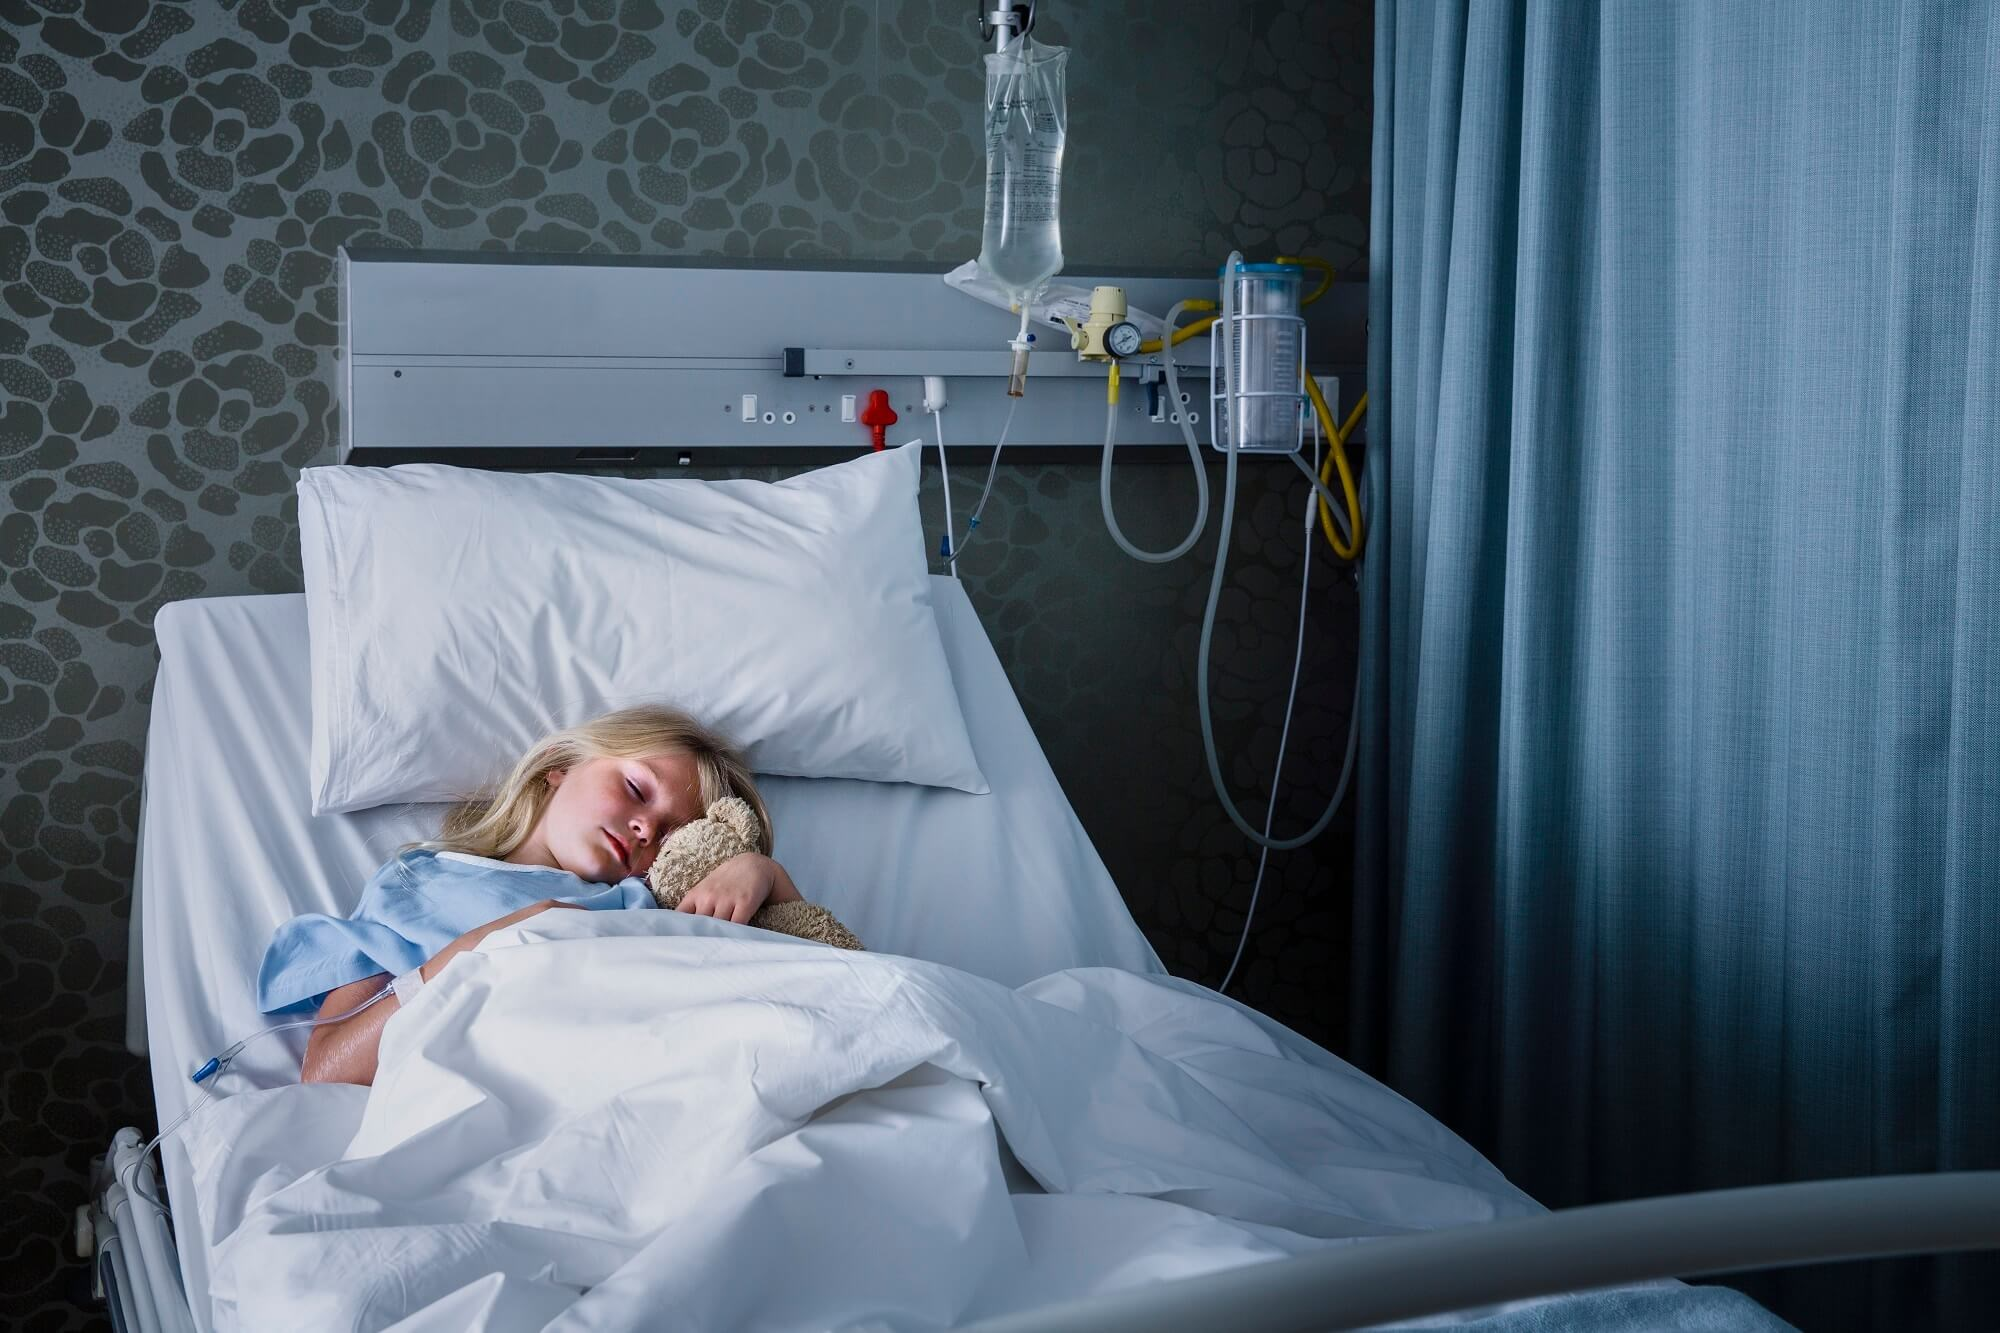 The efficacy of inotuzumab ozogamicin in pediatric patients is less understood than in adult patients.